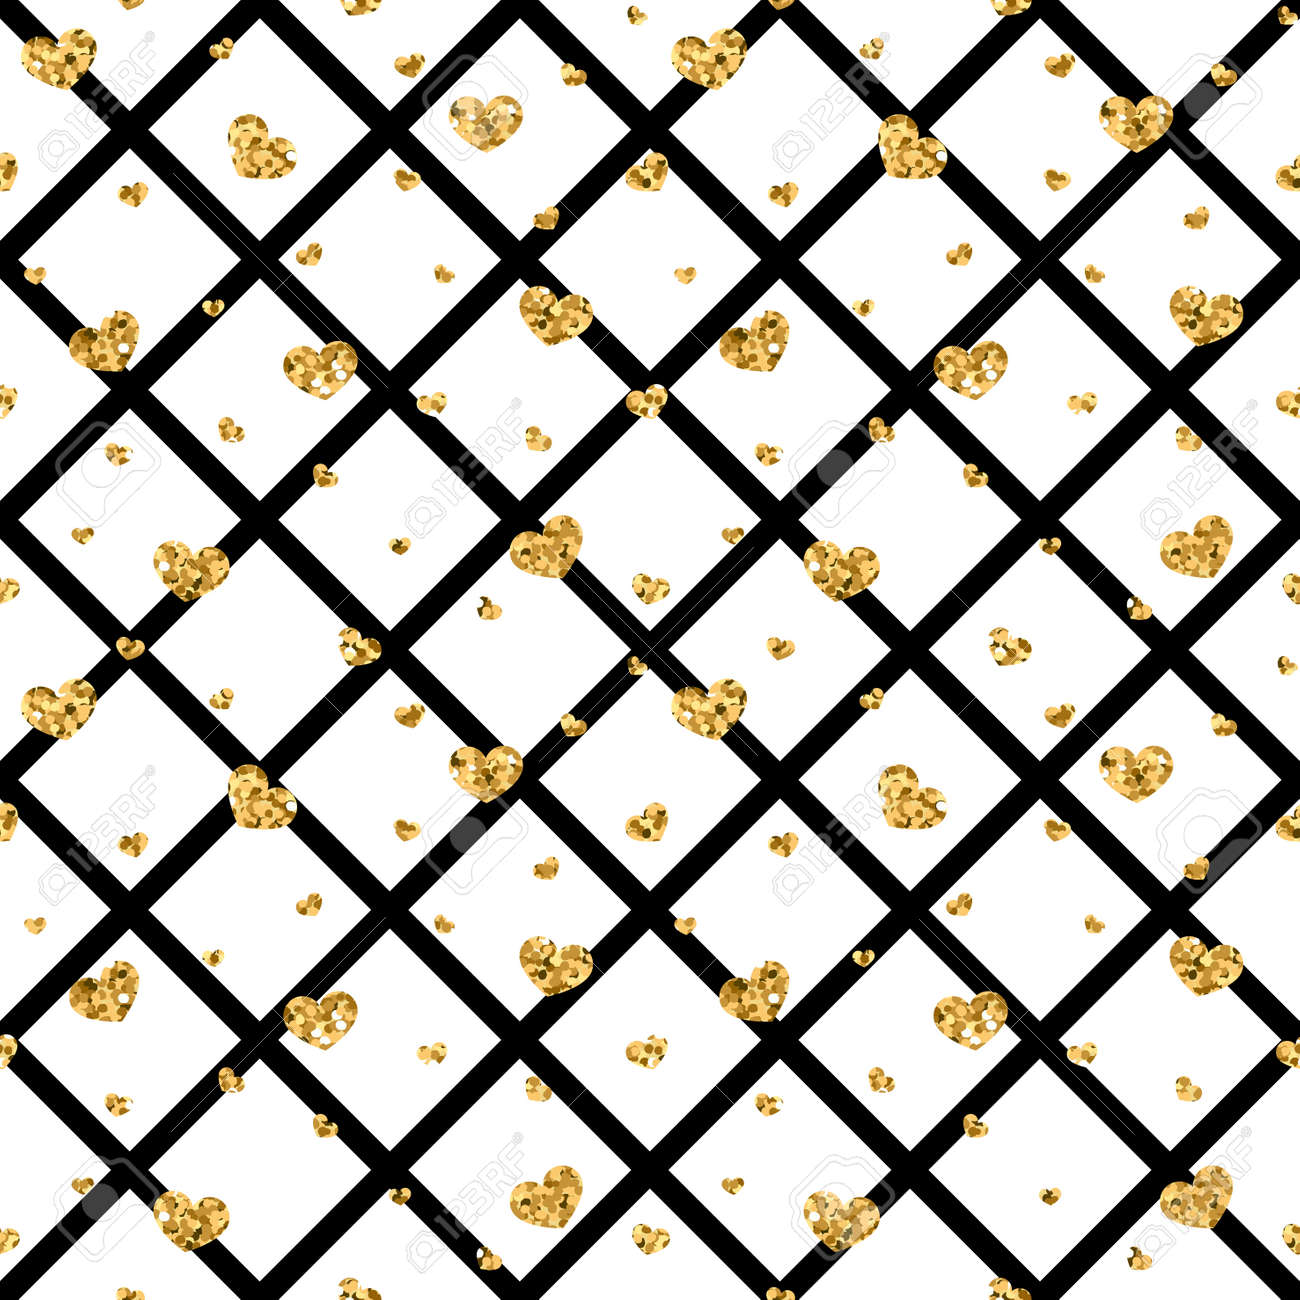 Gold Heart Seamless Pattern Black White Geometric Decoration